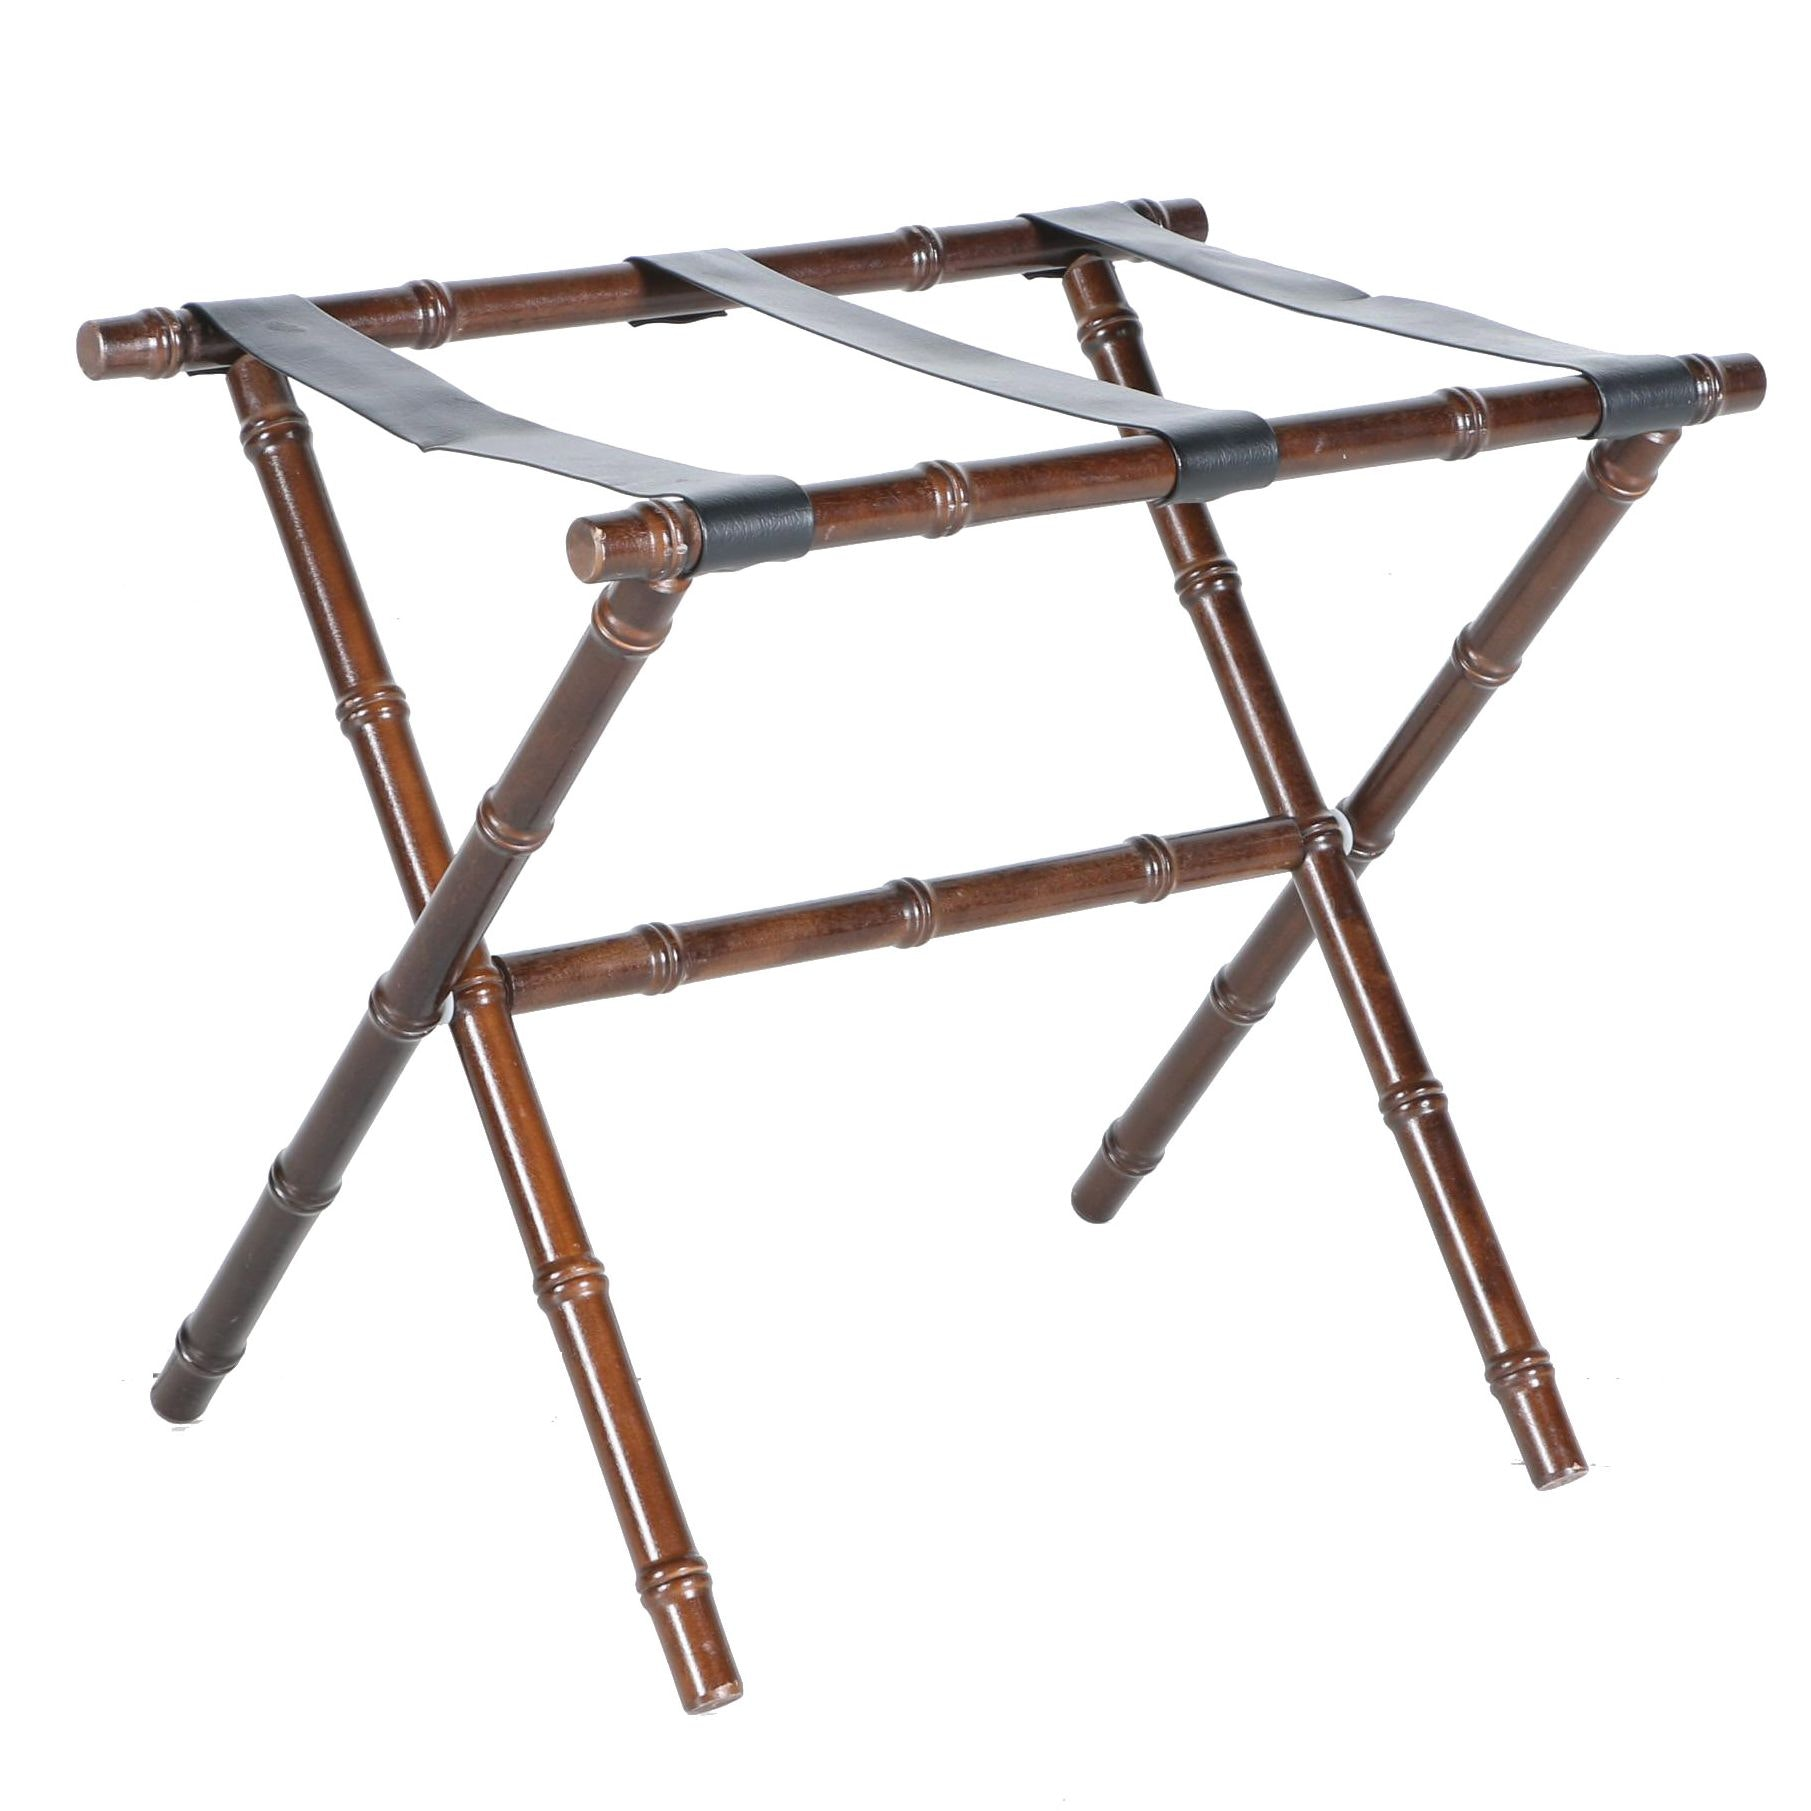 Walnut Luggage Rack With Faux Leather Straps